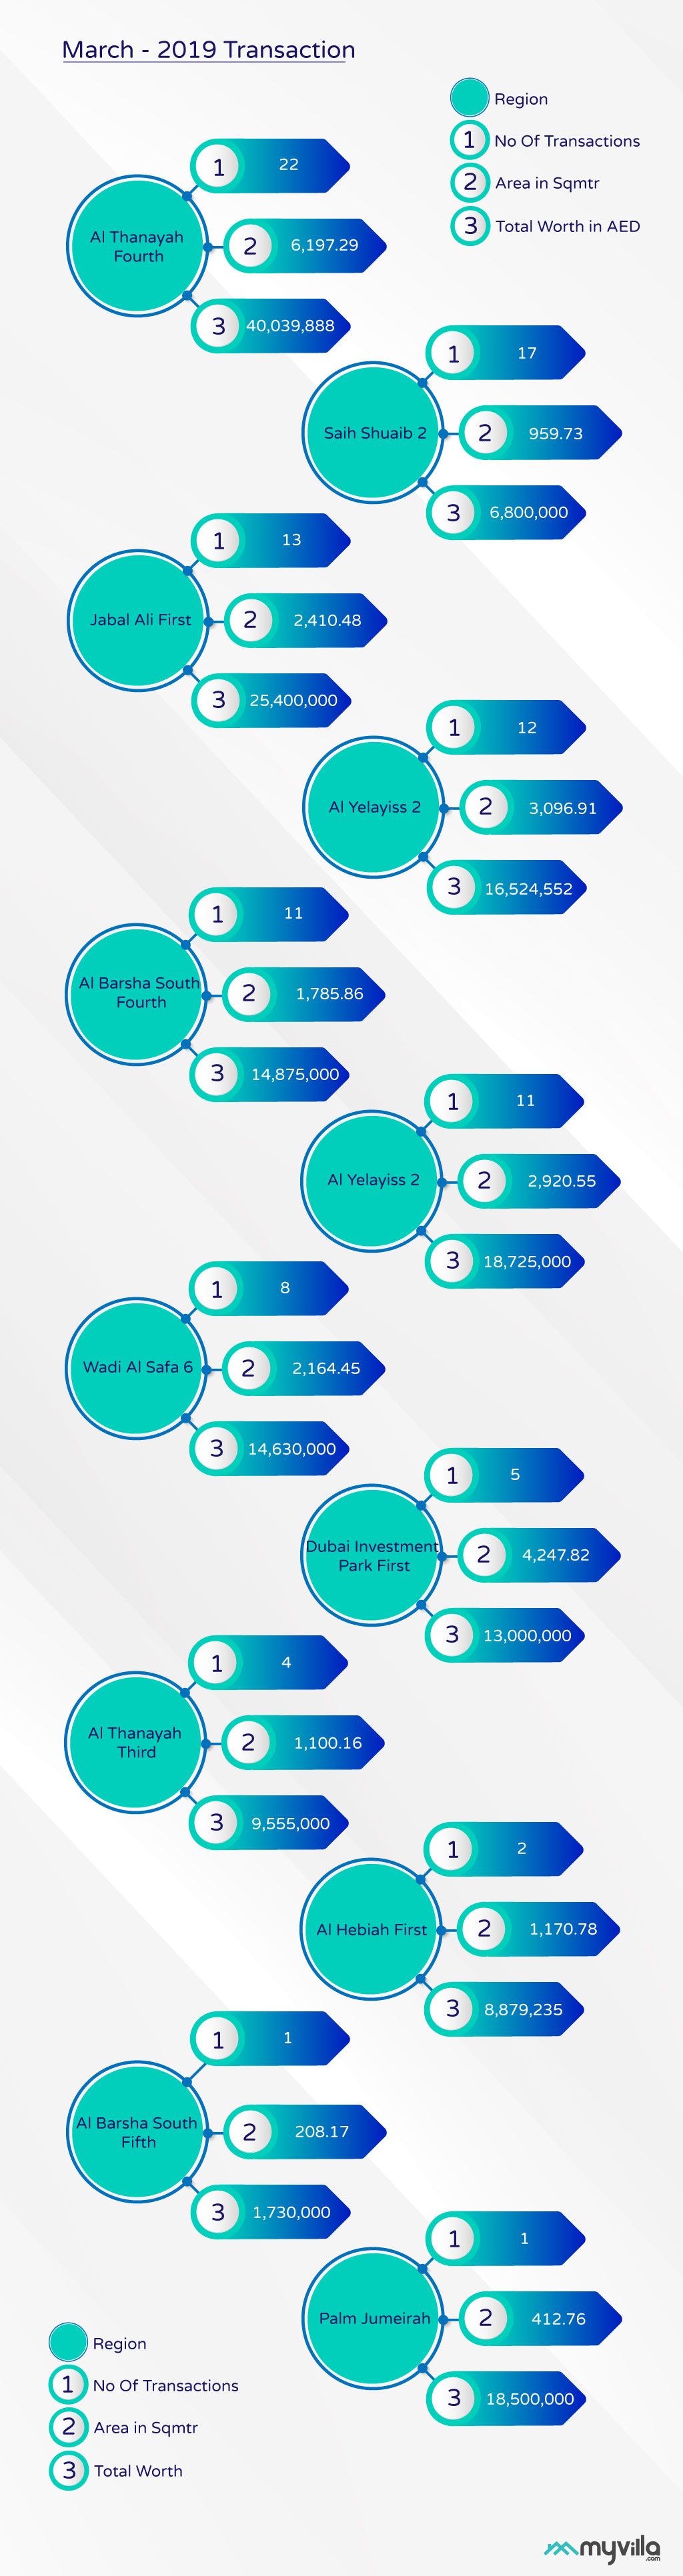 Infograph on Dubai Villa sales in March 2019